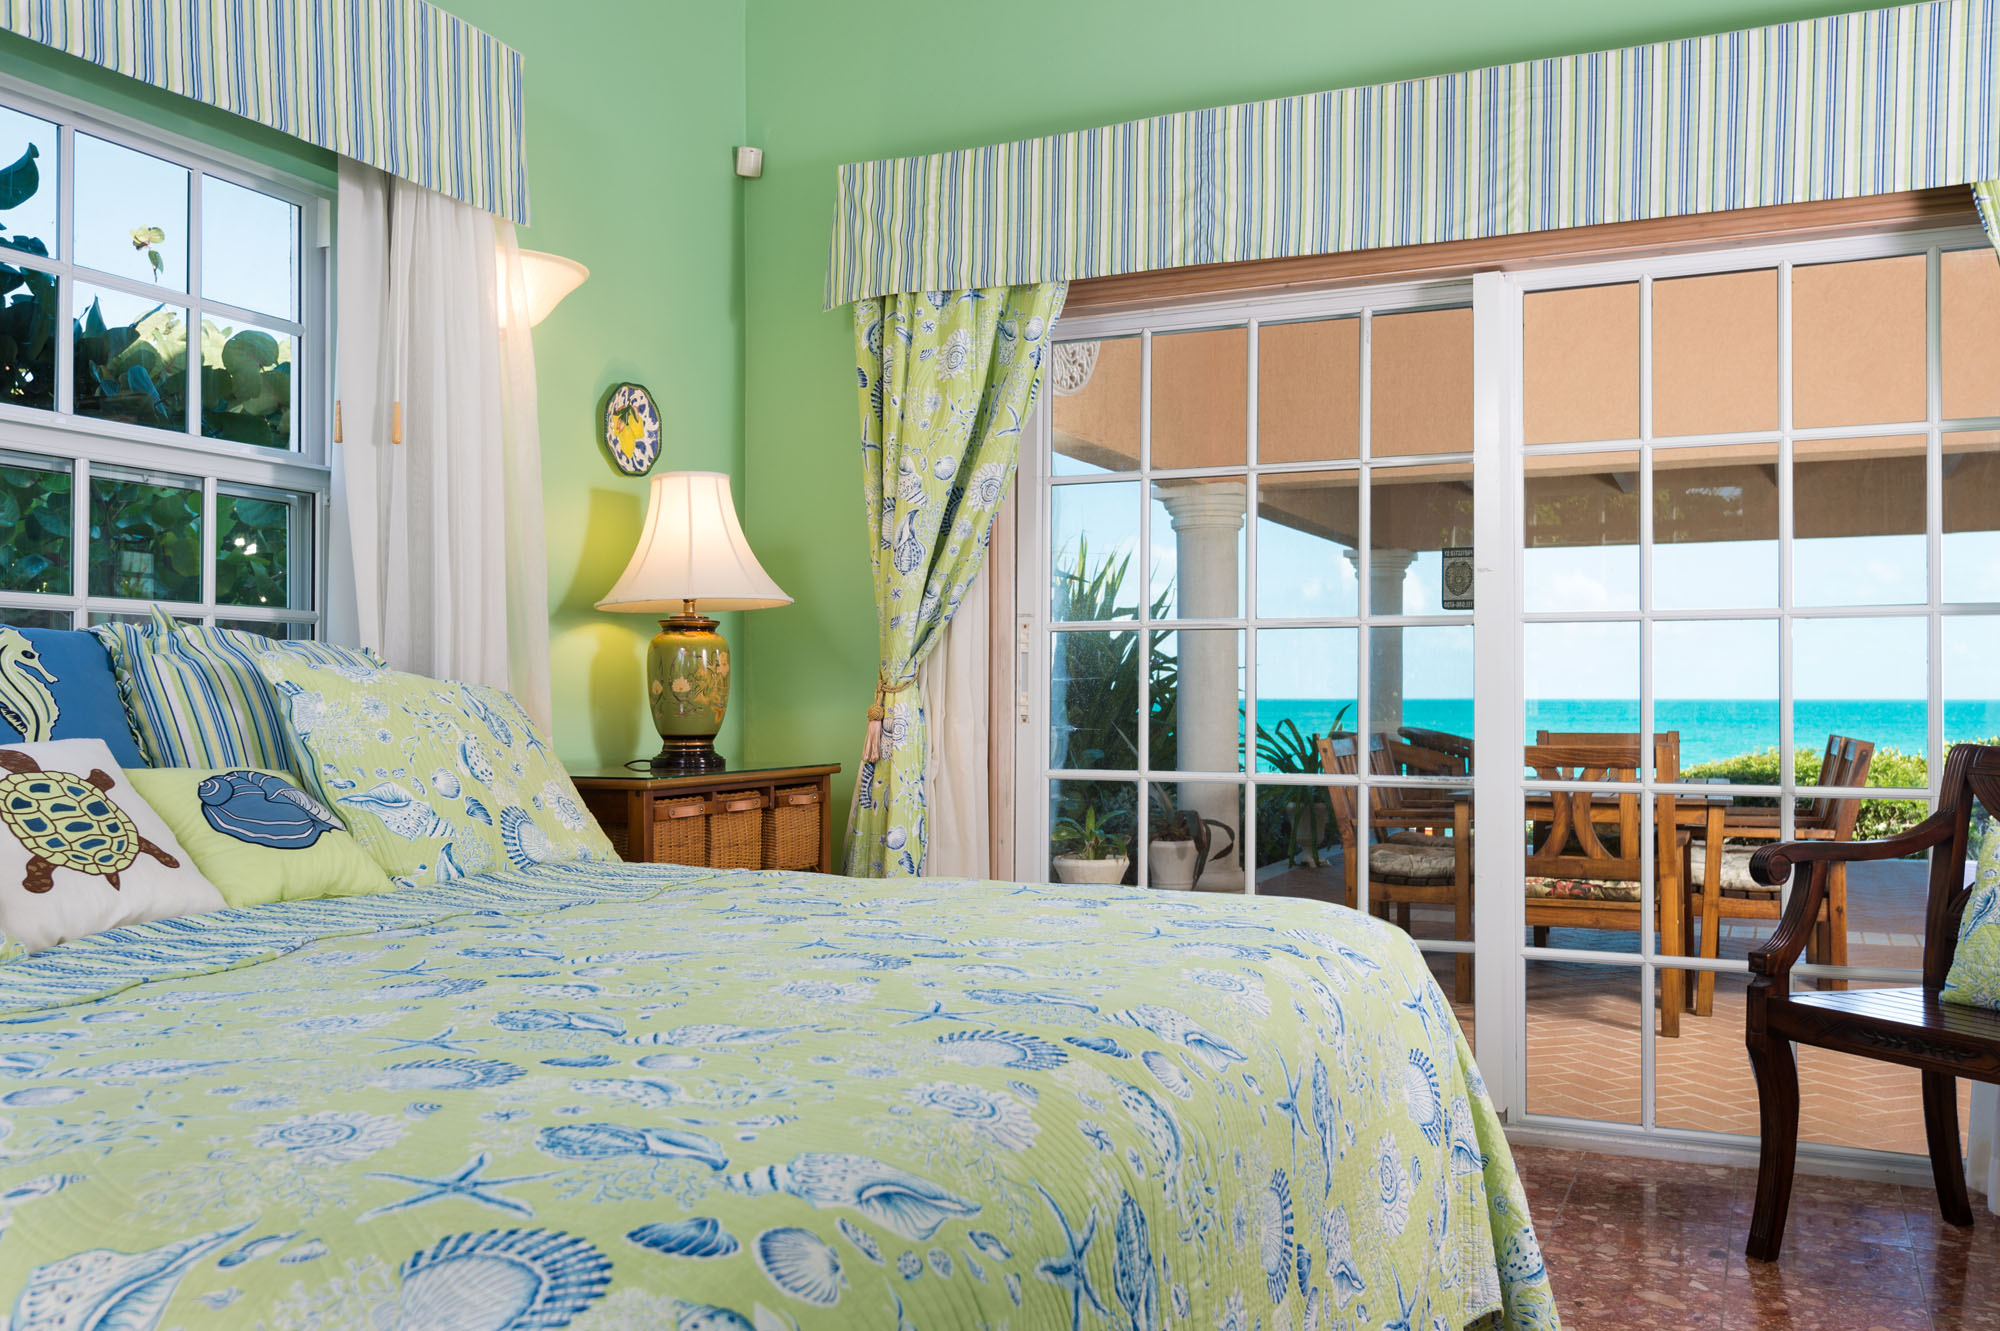 Three Dolphins Villa is the perfect location for a wedding in the Turks and Caicos Islands